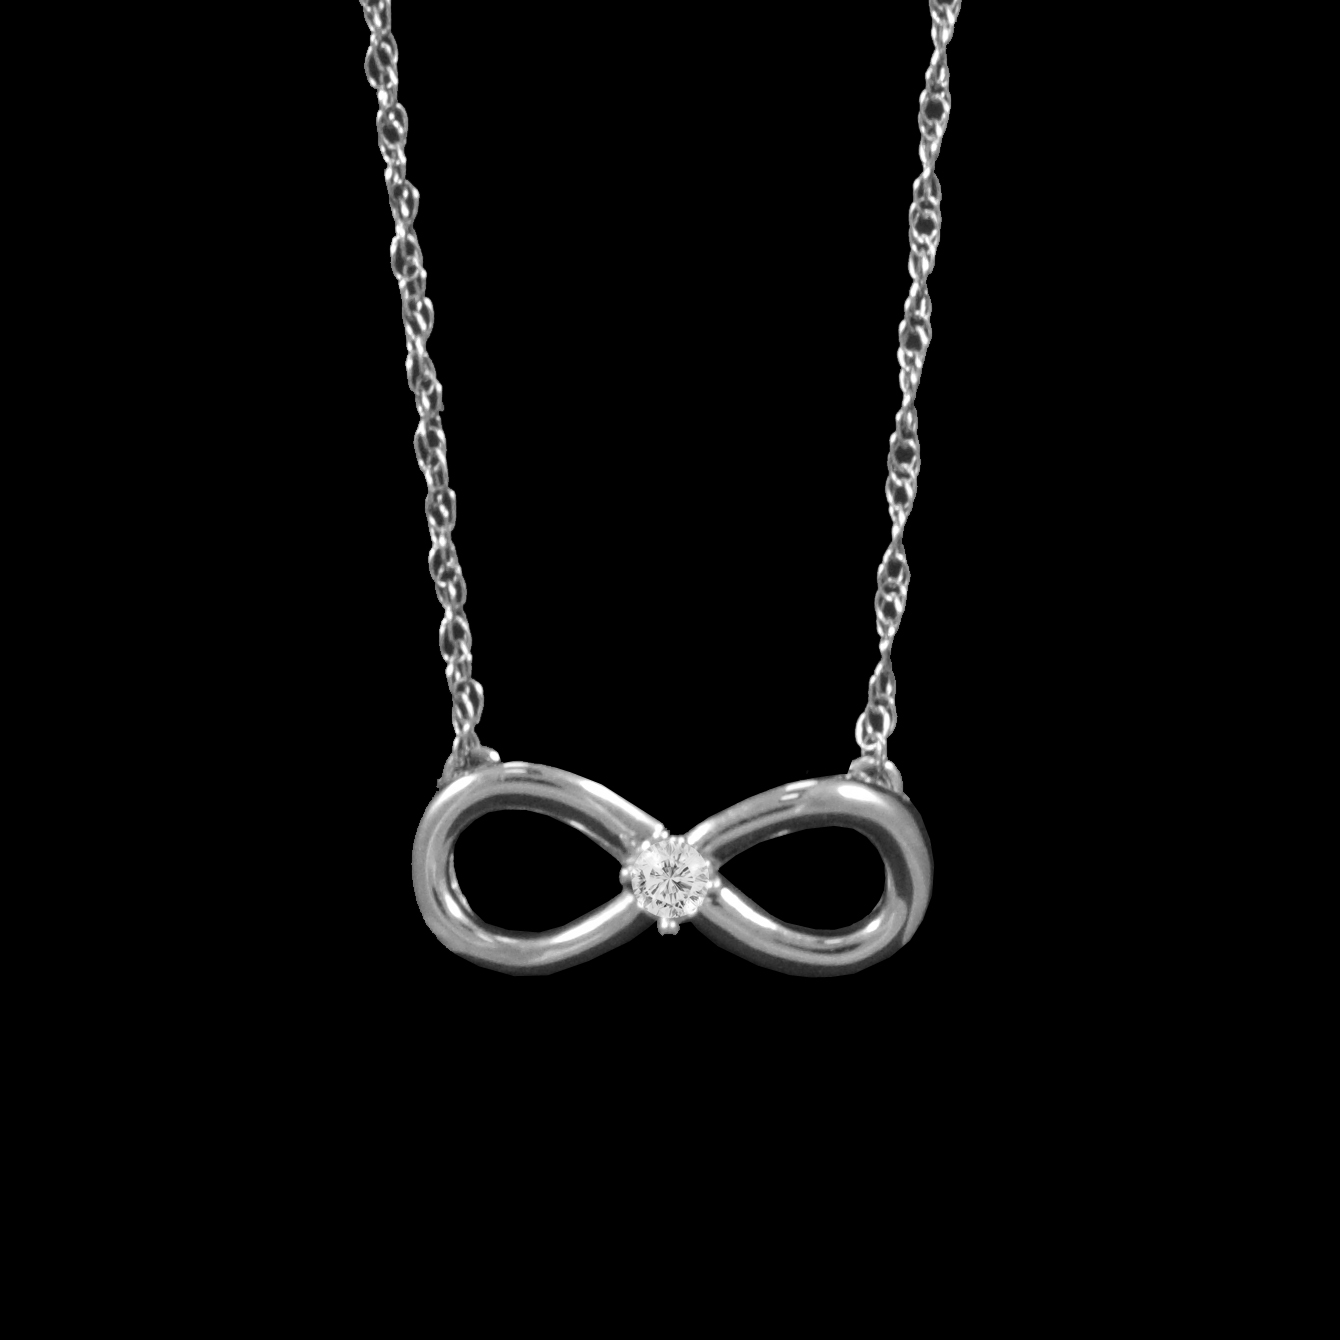 To acquire Necklace infinity white gold picture trends